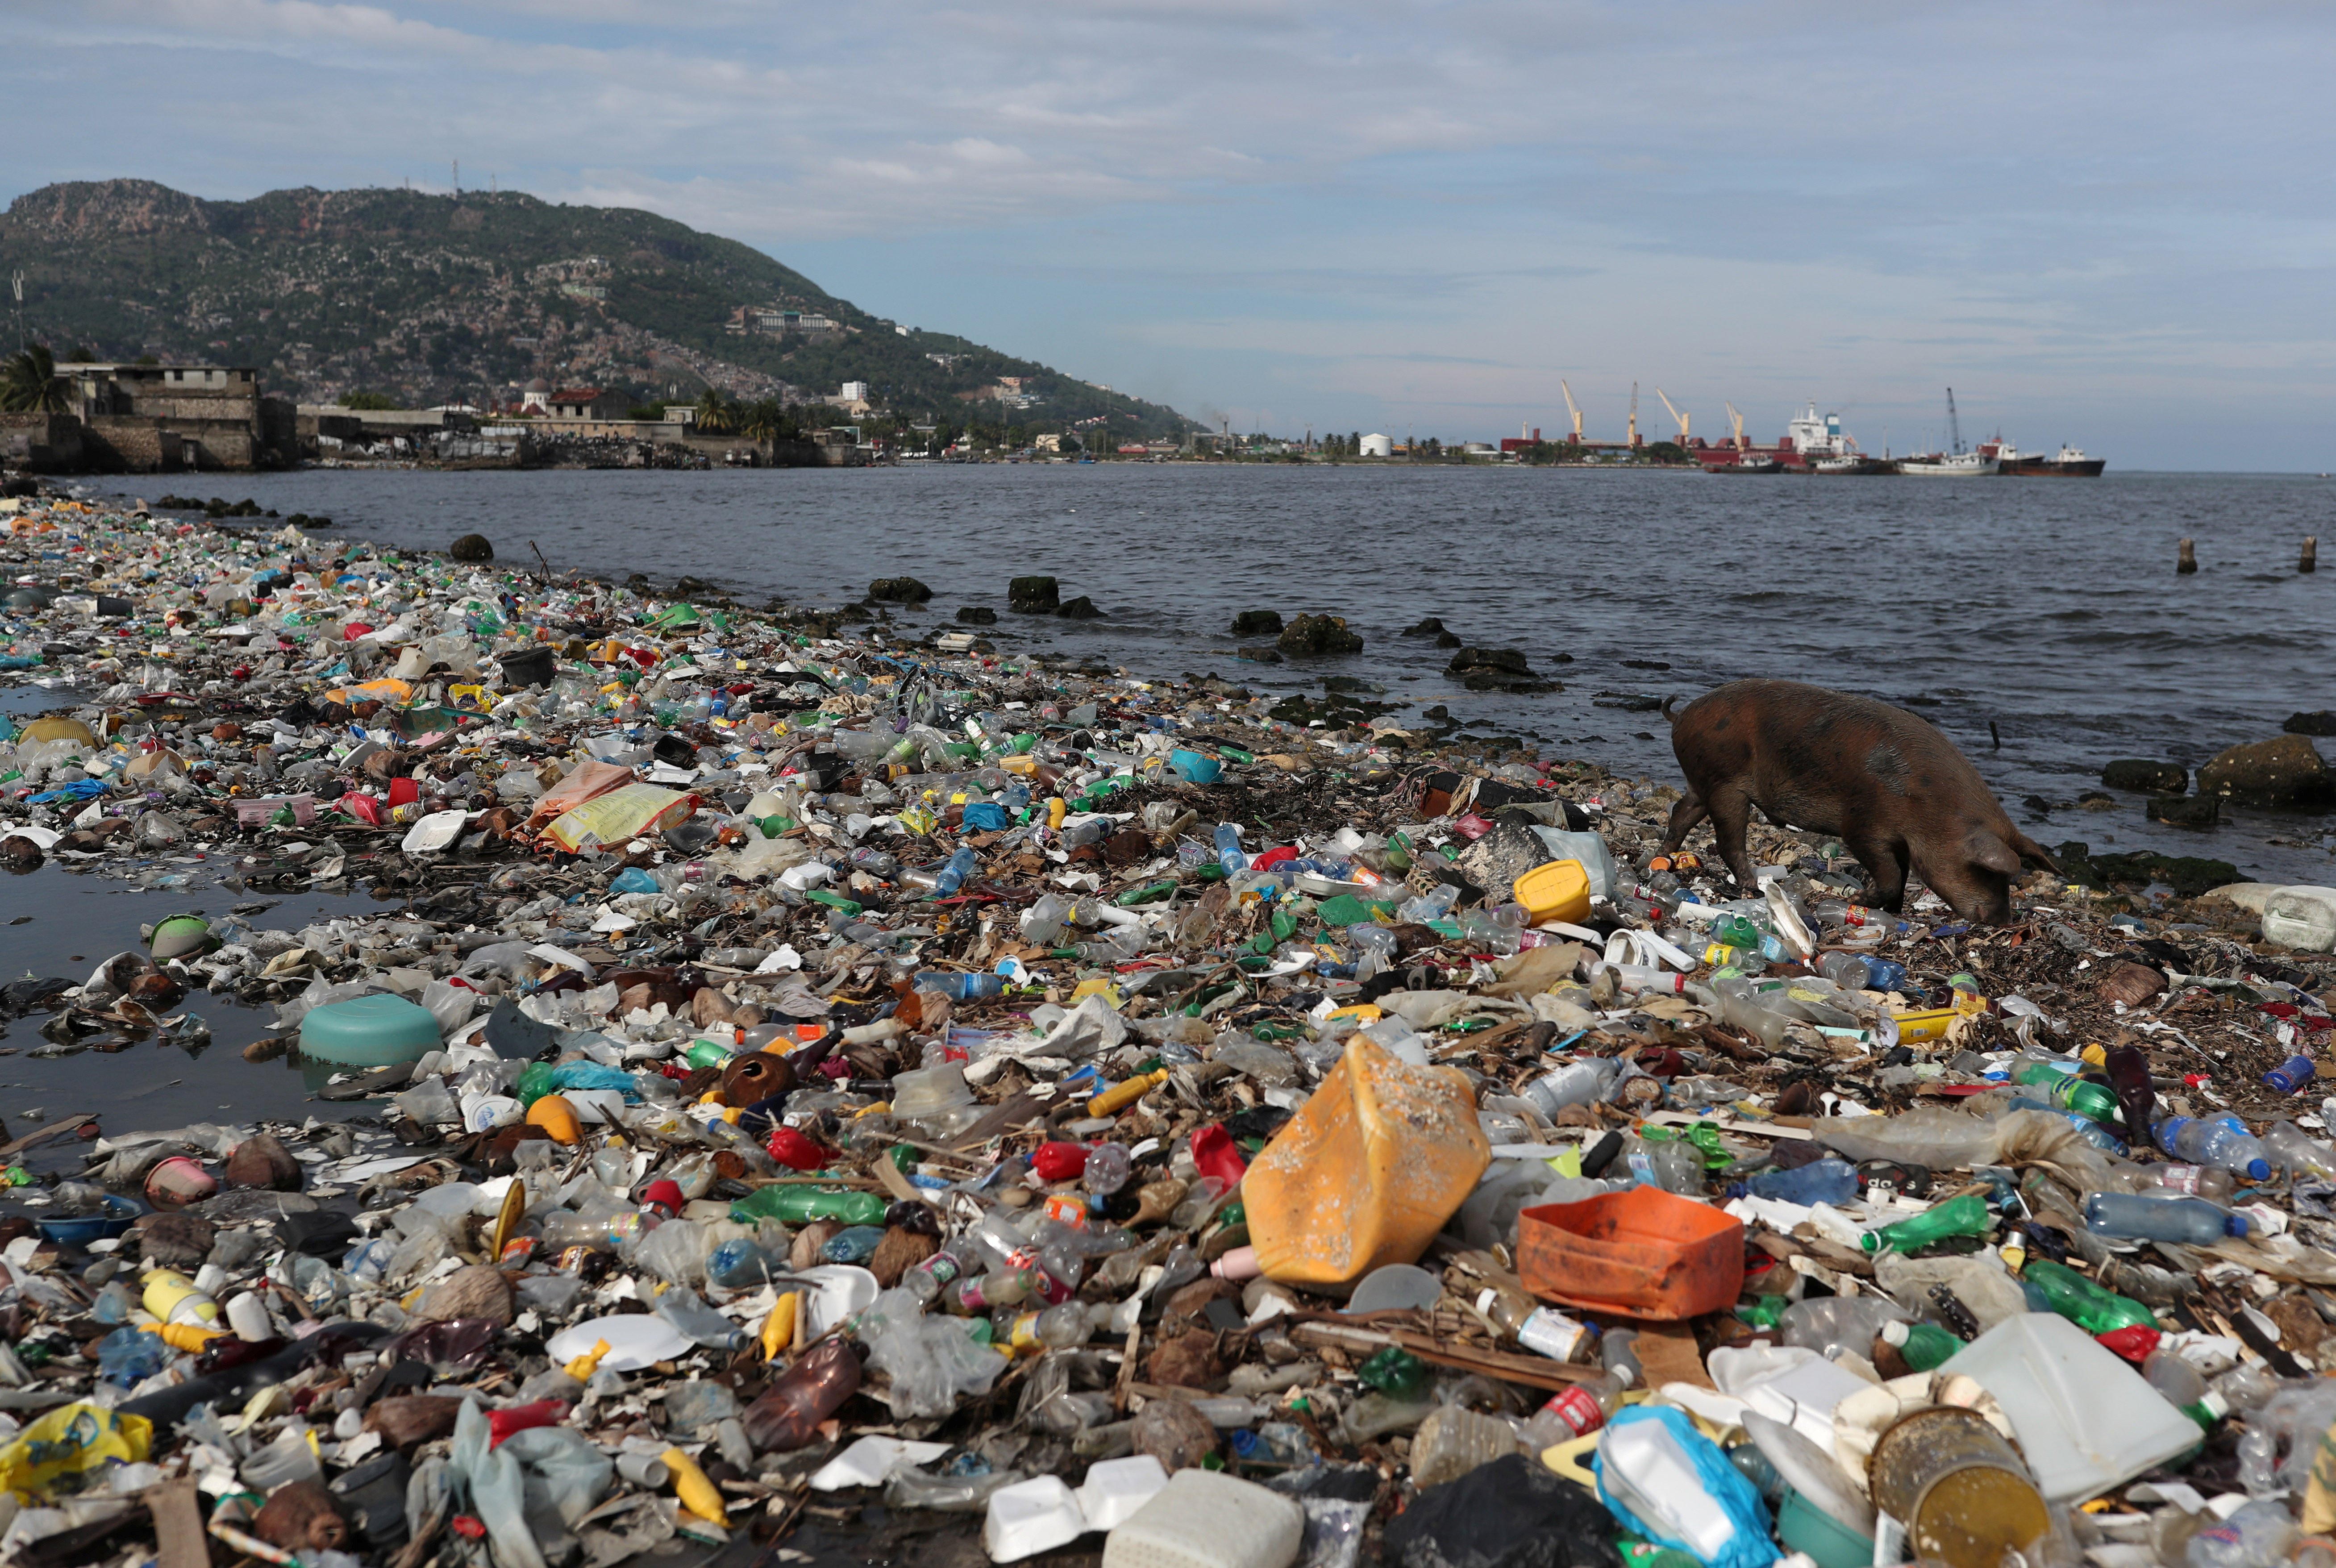 Plastic and other debris are seen on the shores of Cap Haitian beach, in Cap Haitian, Haiti October 9, 2018. REUTERS/Ricardo Rojas - RC1BEDCB32D0